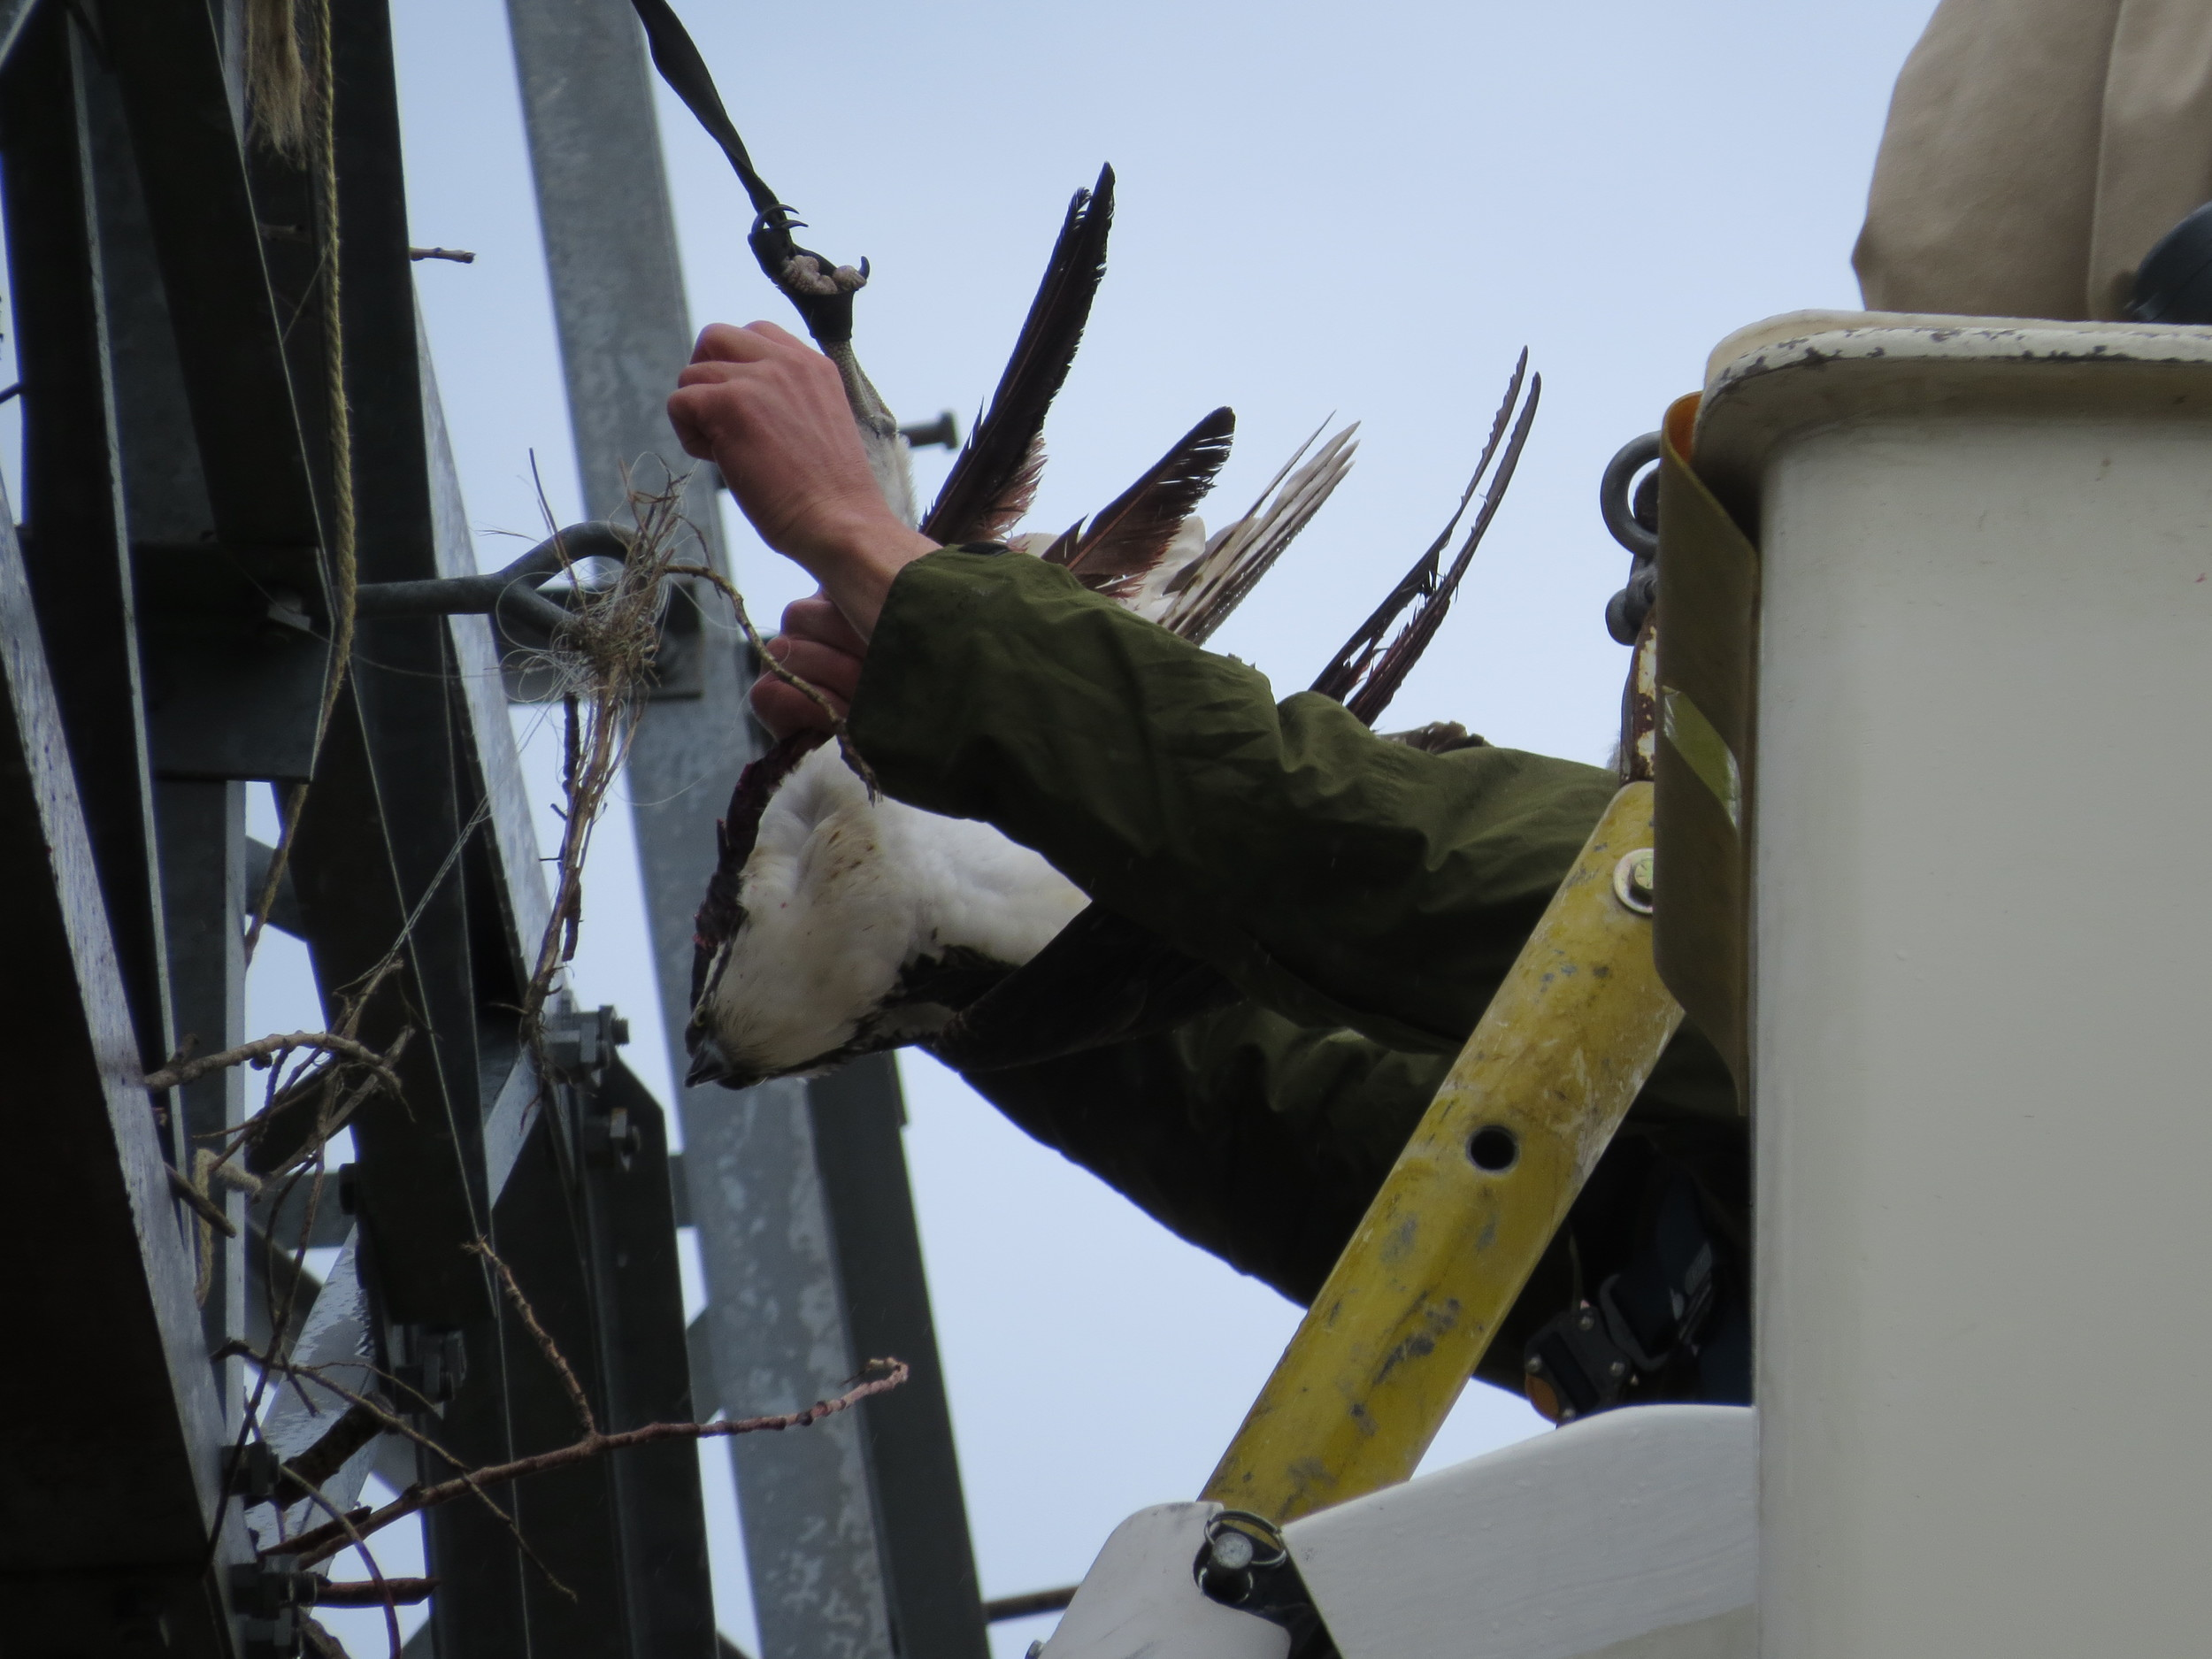 Scott untangling the Osprey.